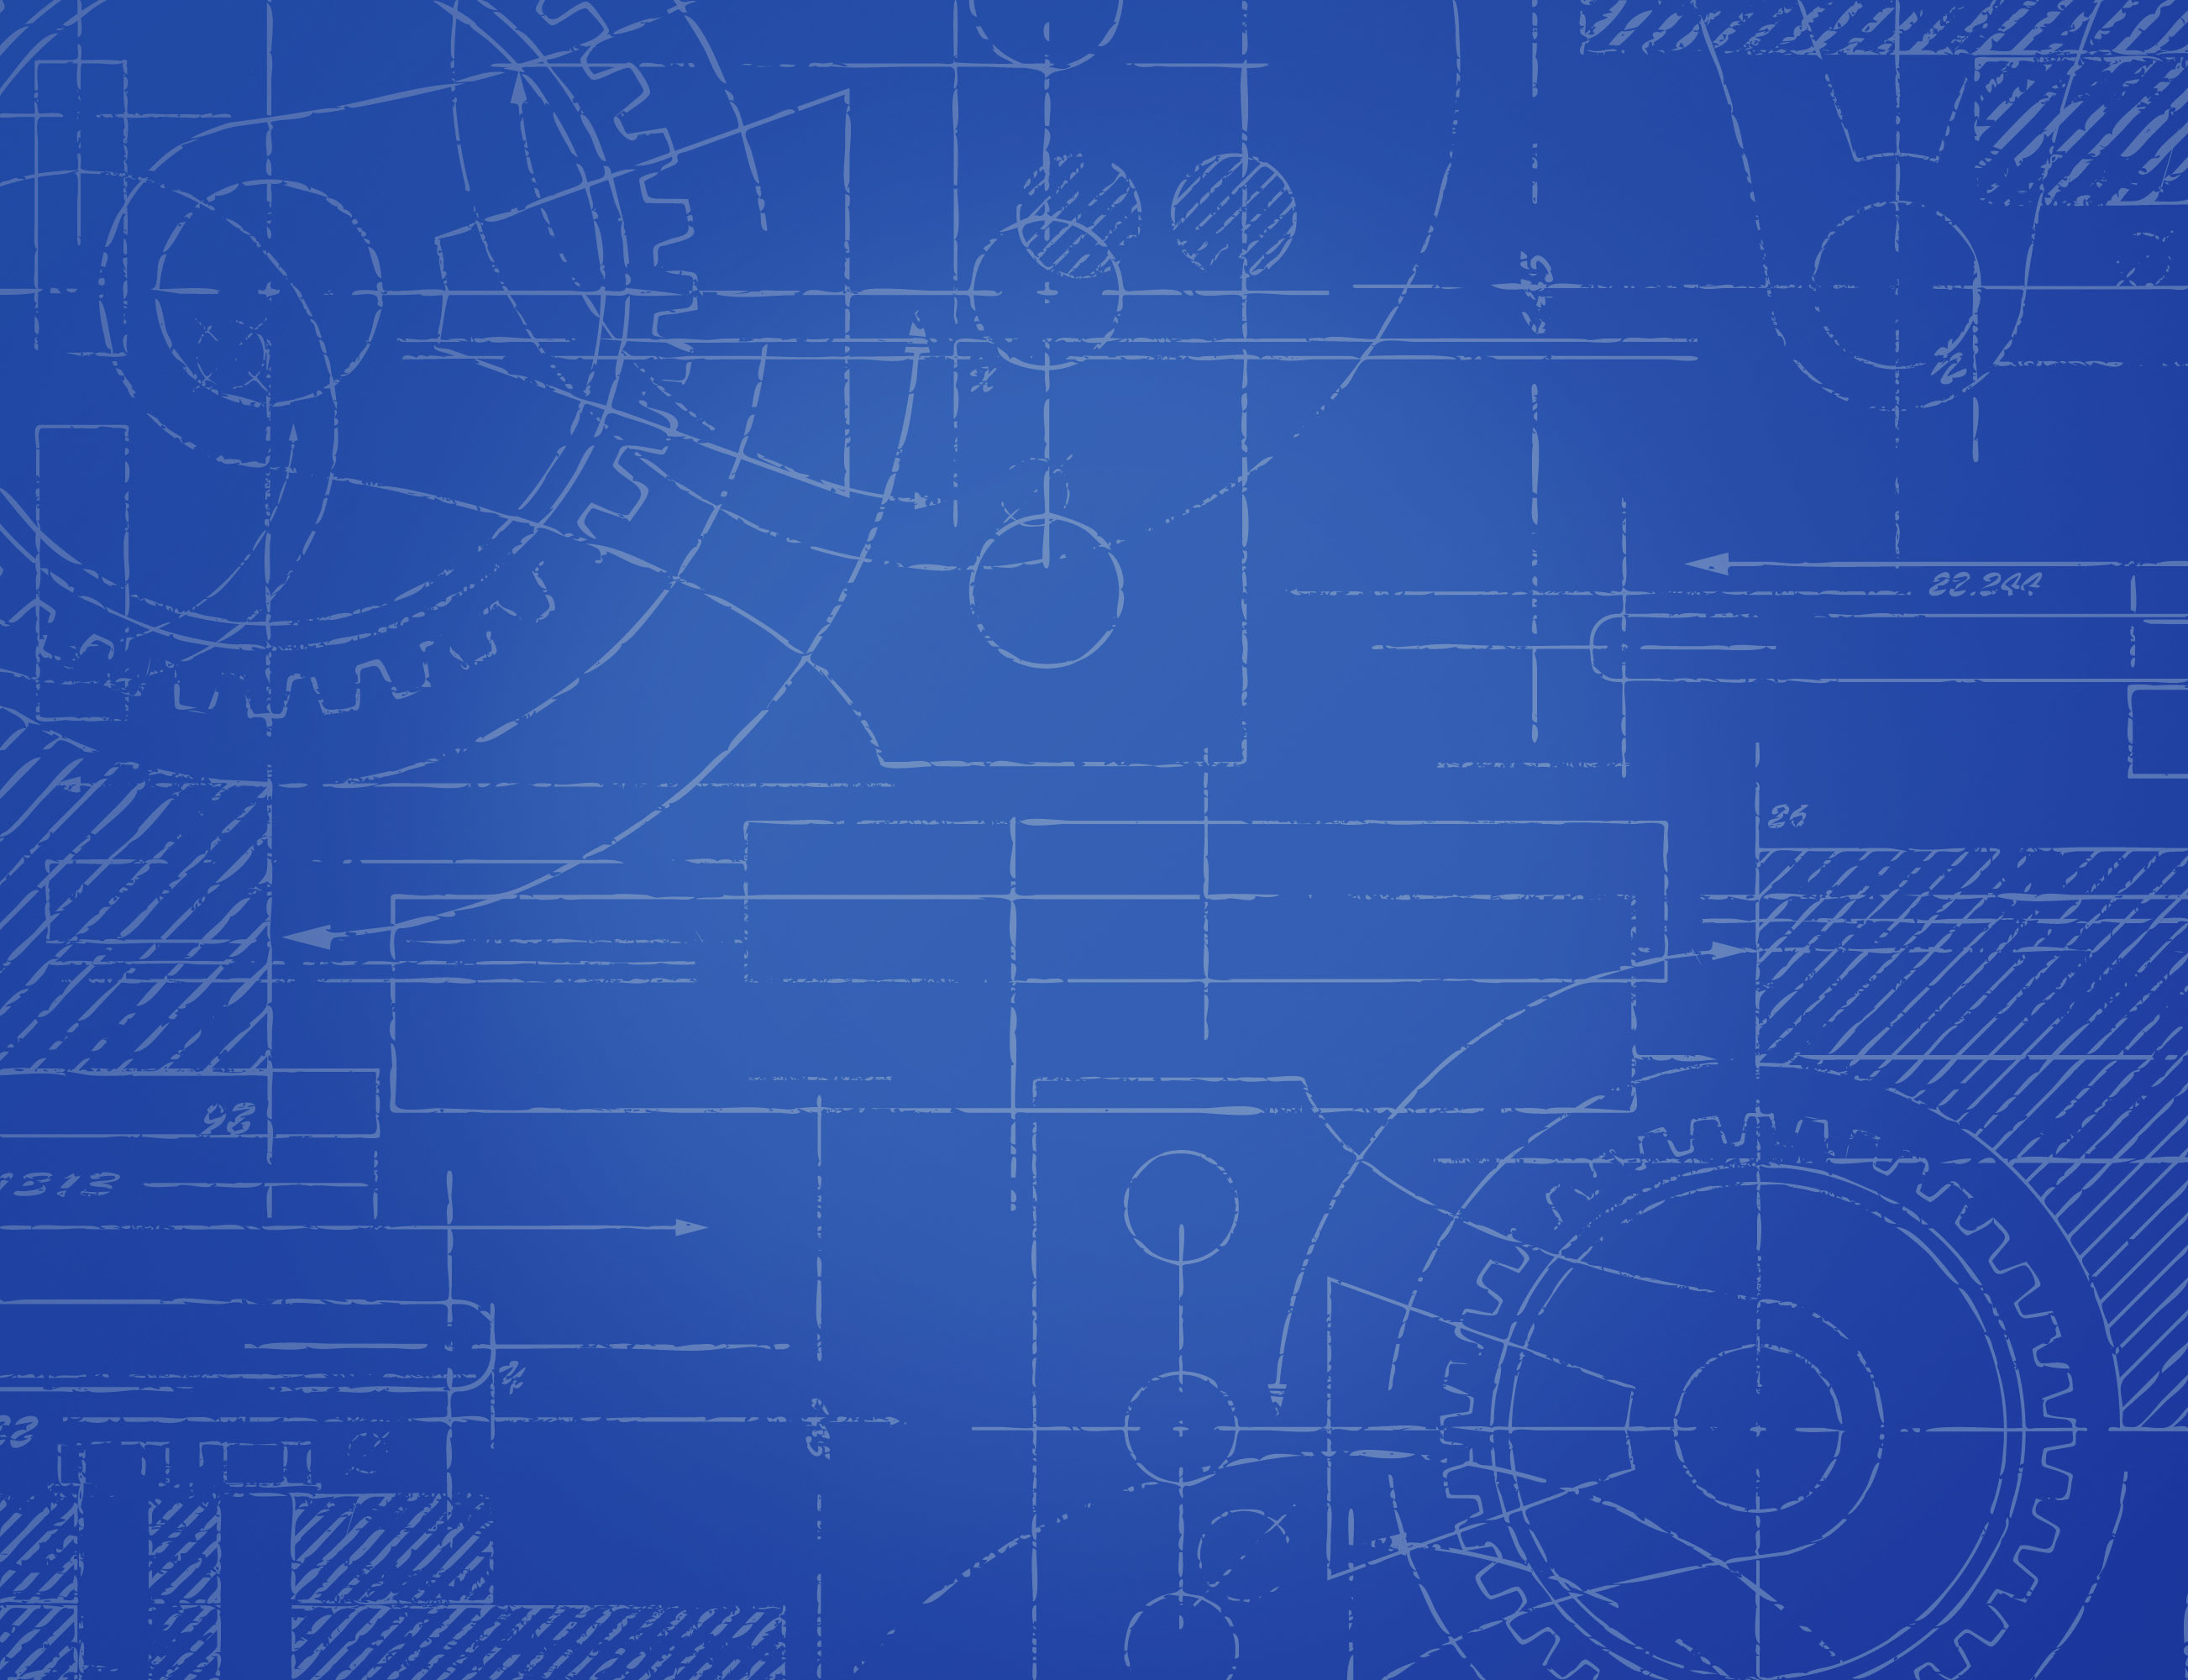 Blank blueprint background 46 pictures download background malvernweather Gallery